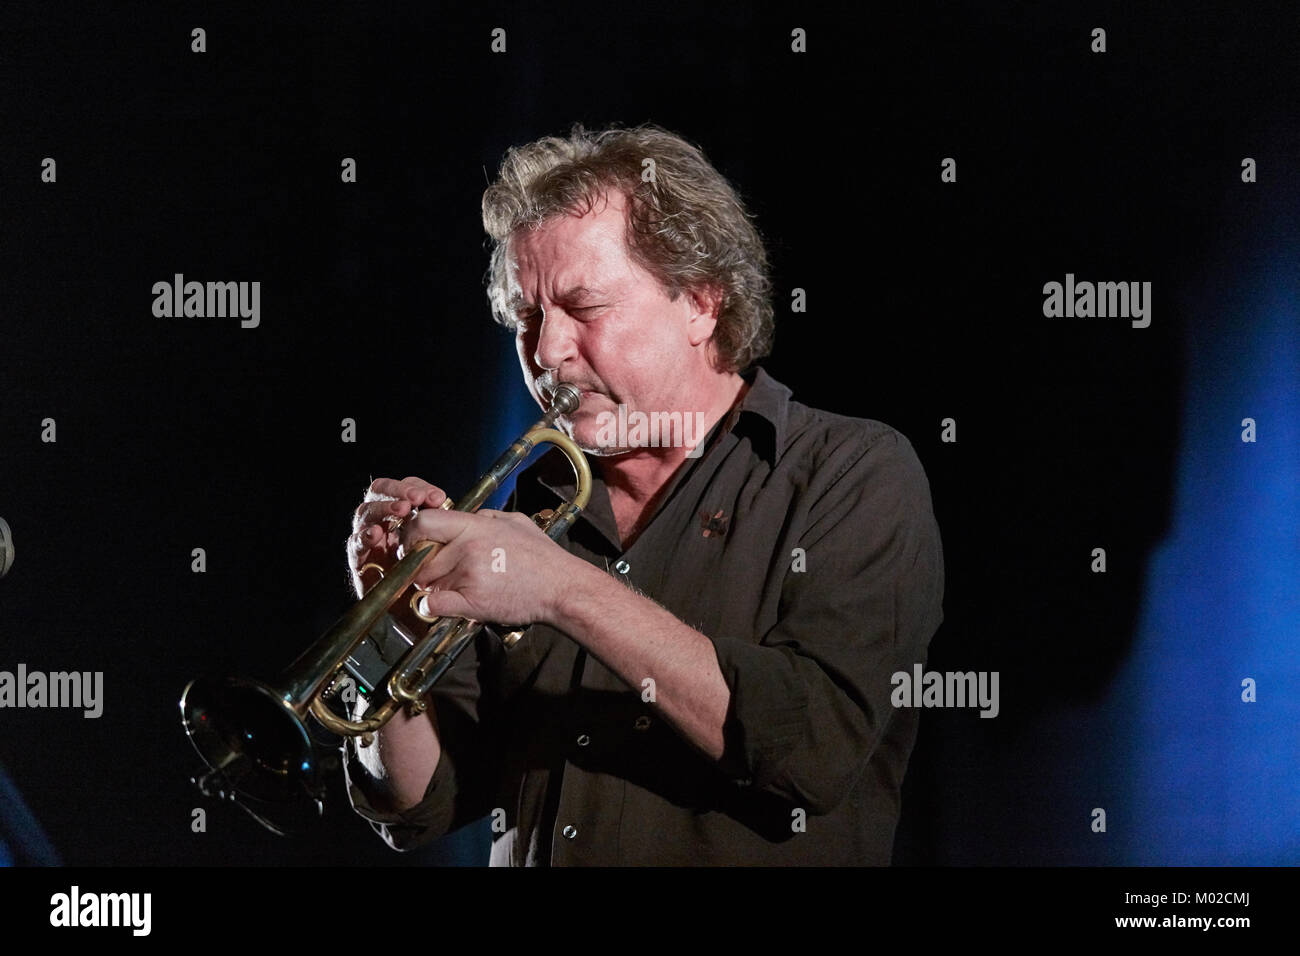 The Norwegian jazz musician and trumpeter Nils Petter Molvær (also knowns as NPM) performs a live concert at - Stock Image